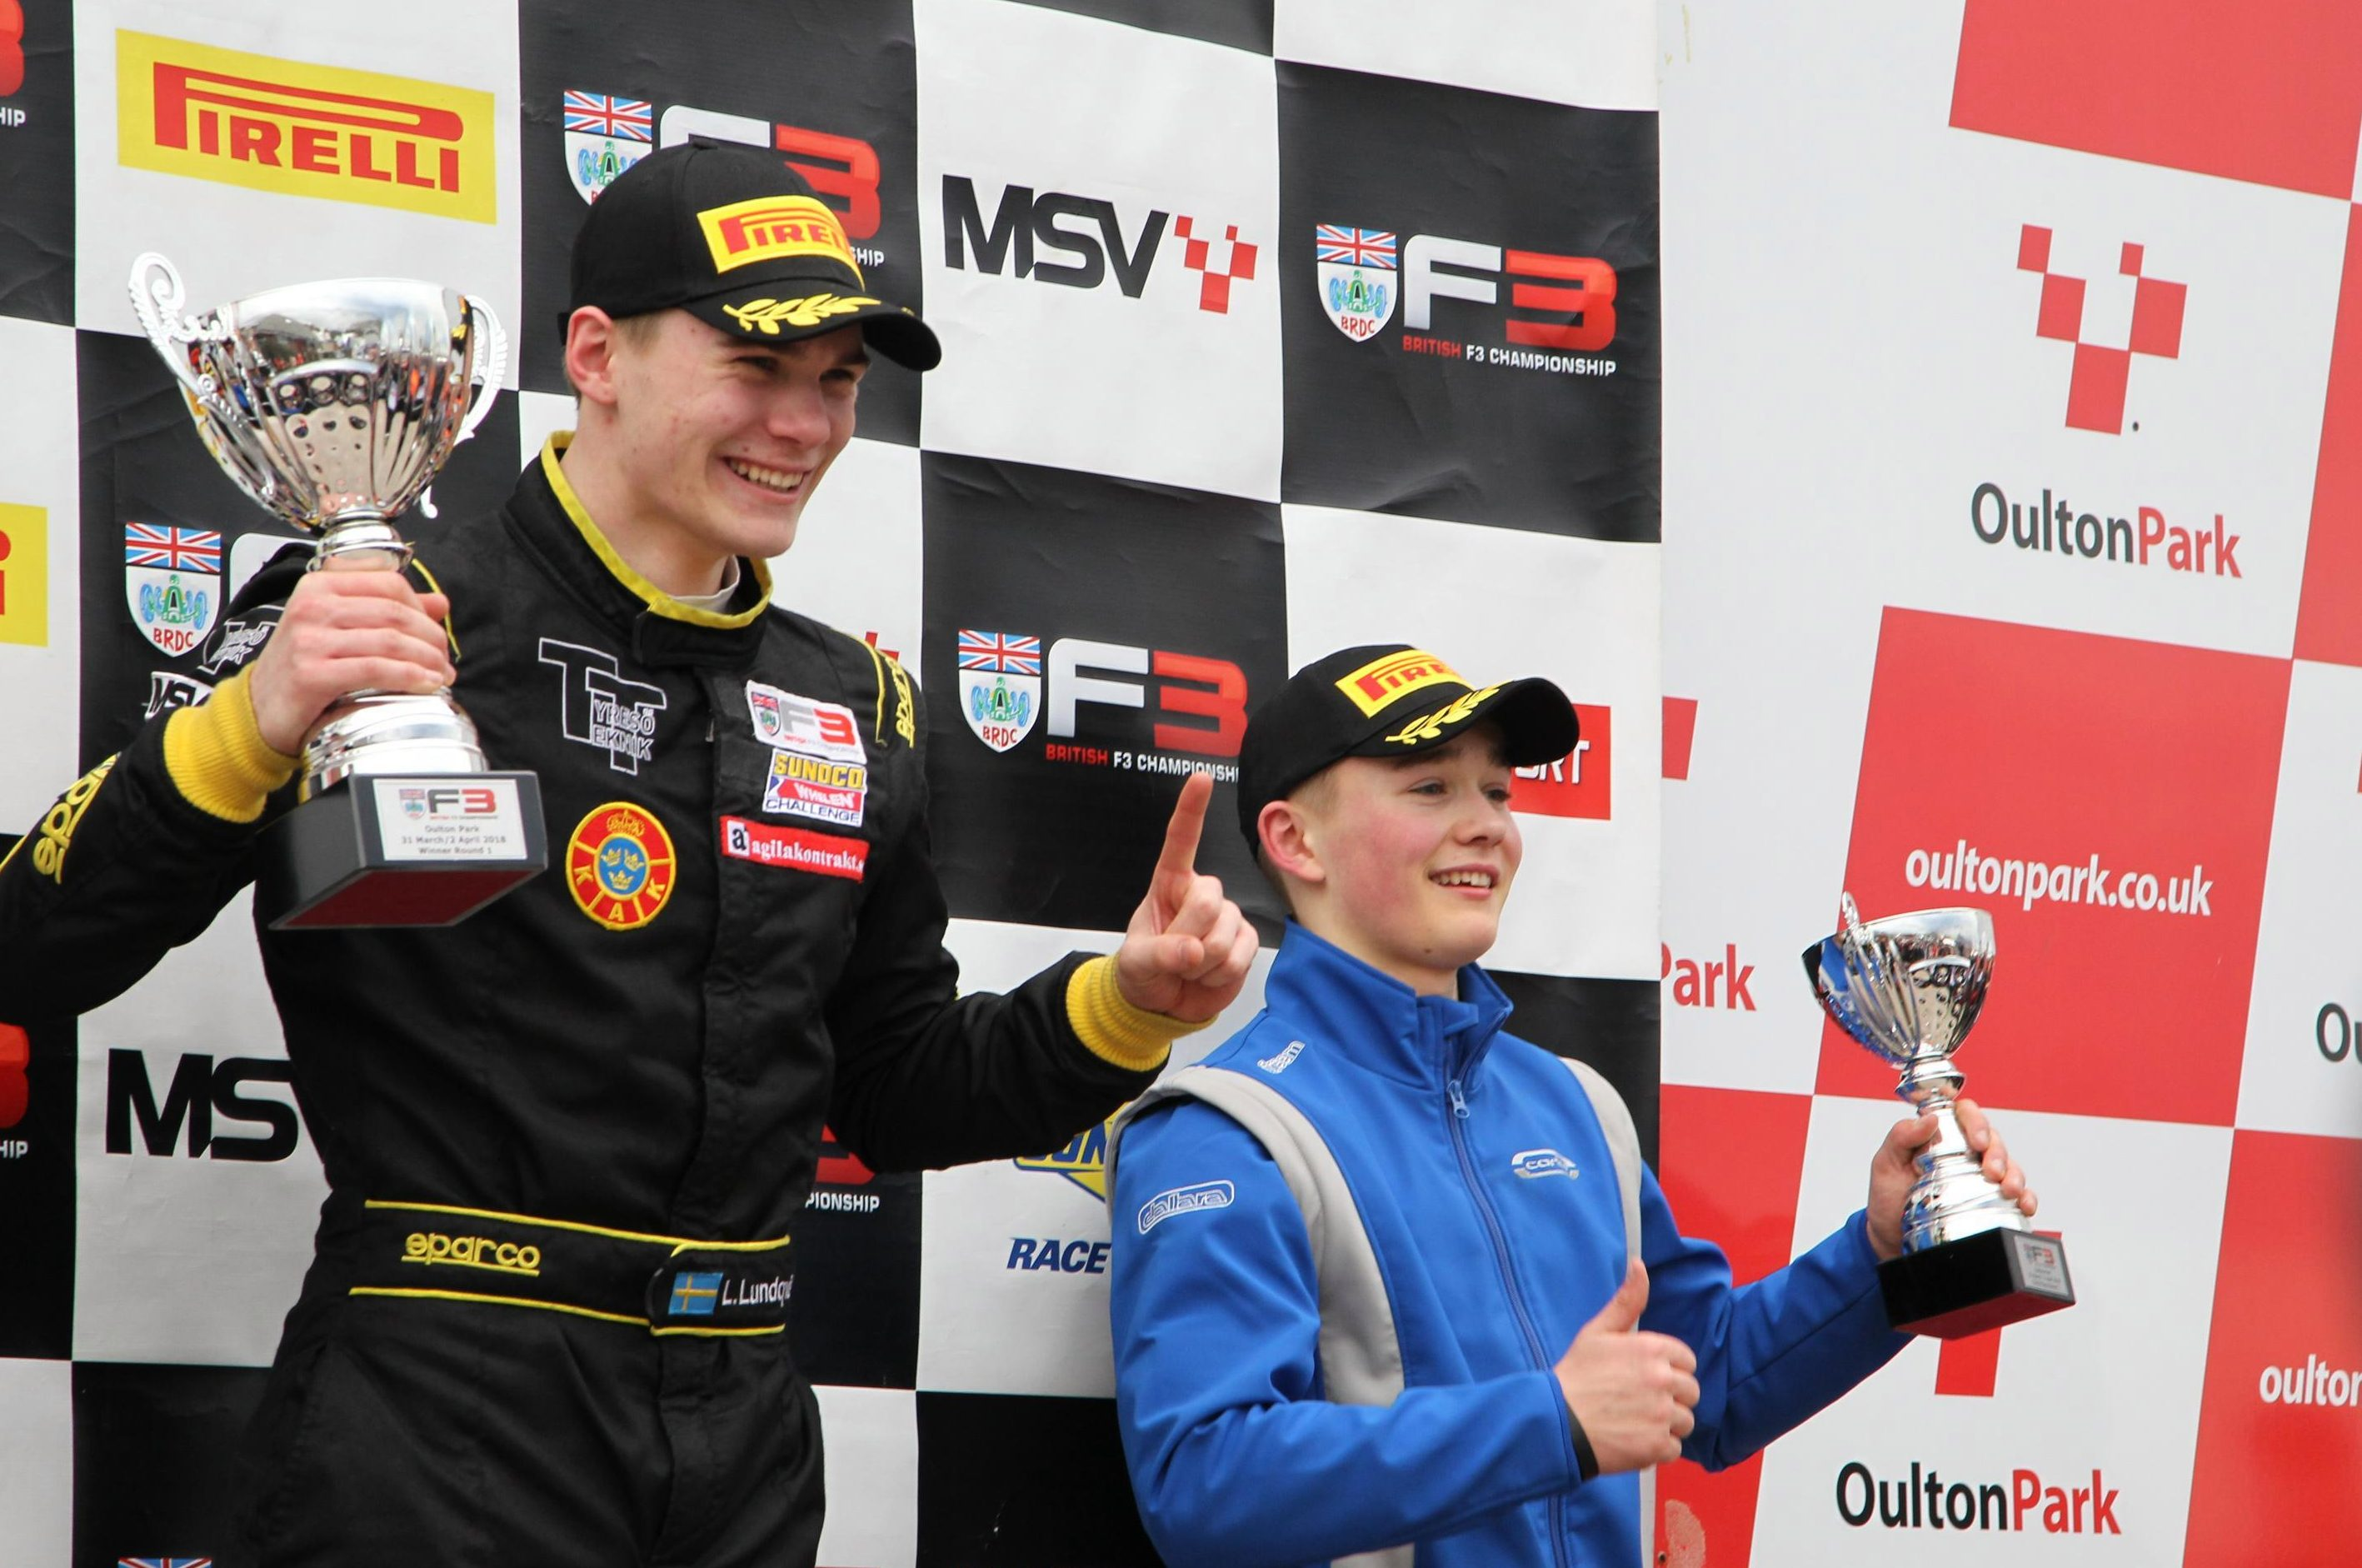 Finishing third at Oulton Park in his first outing for Carlin in Formula Three must be pleasing for Billy Monger